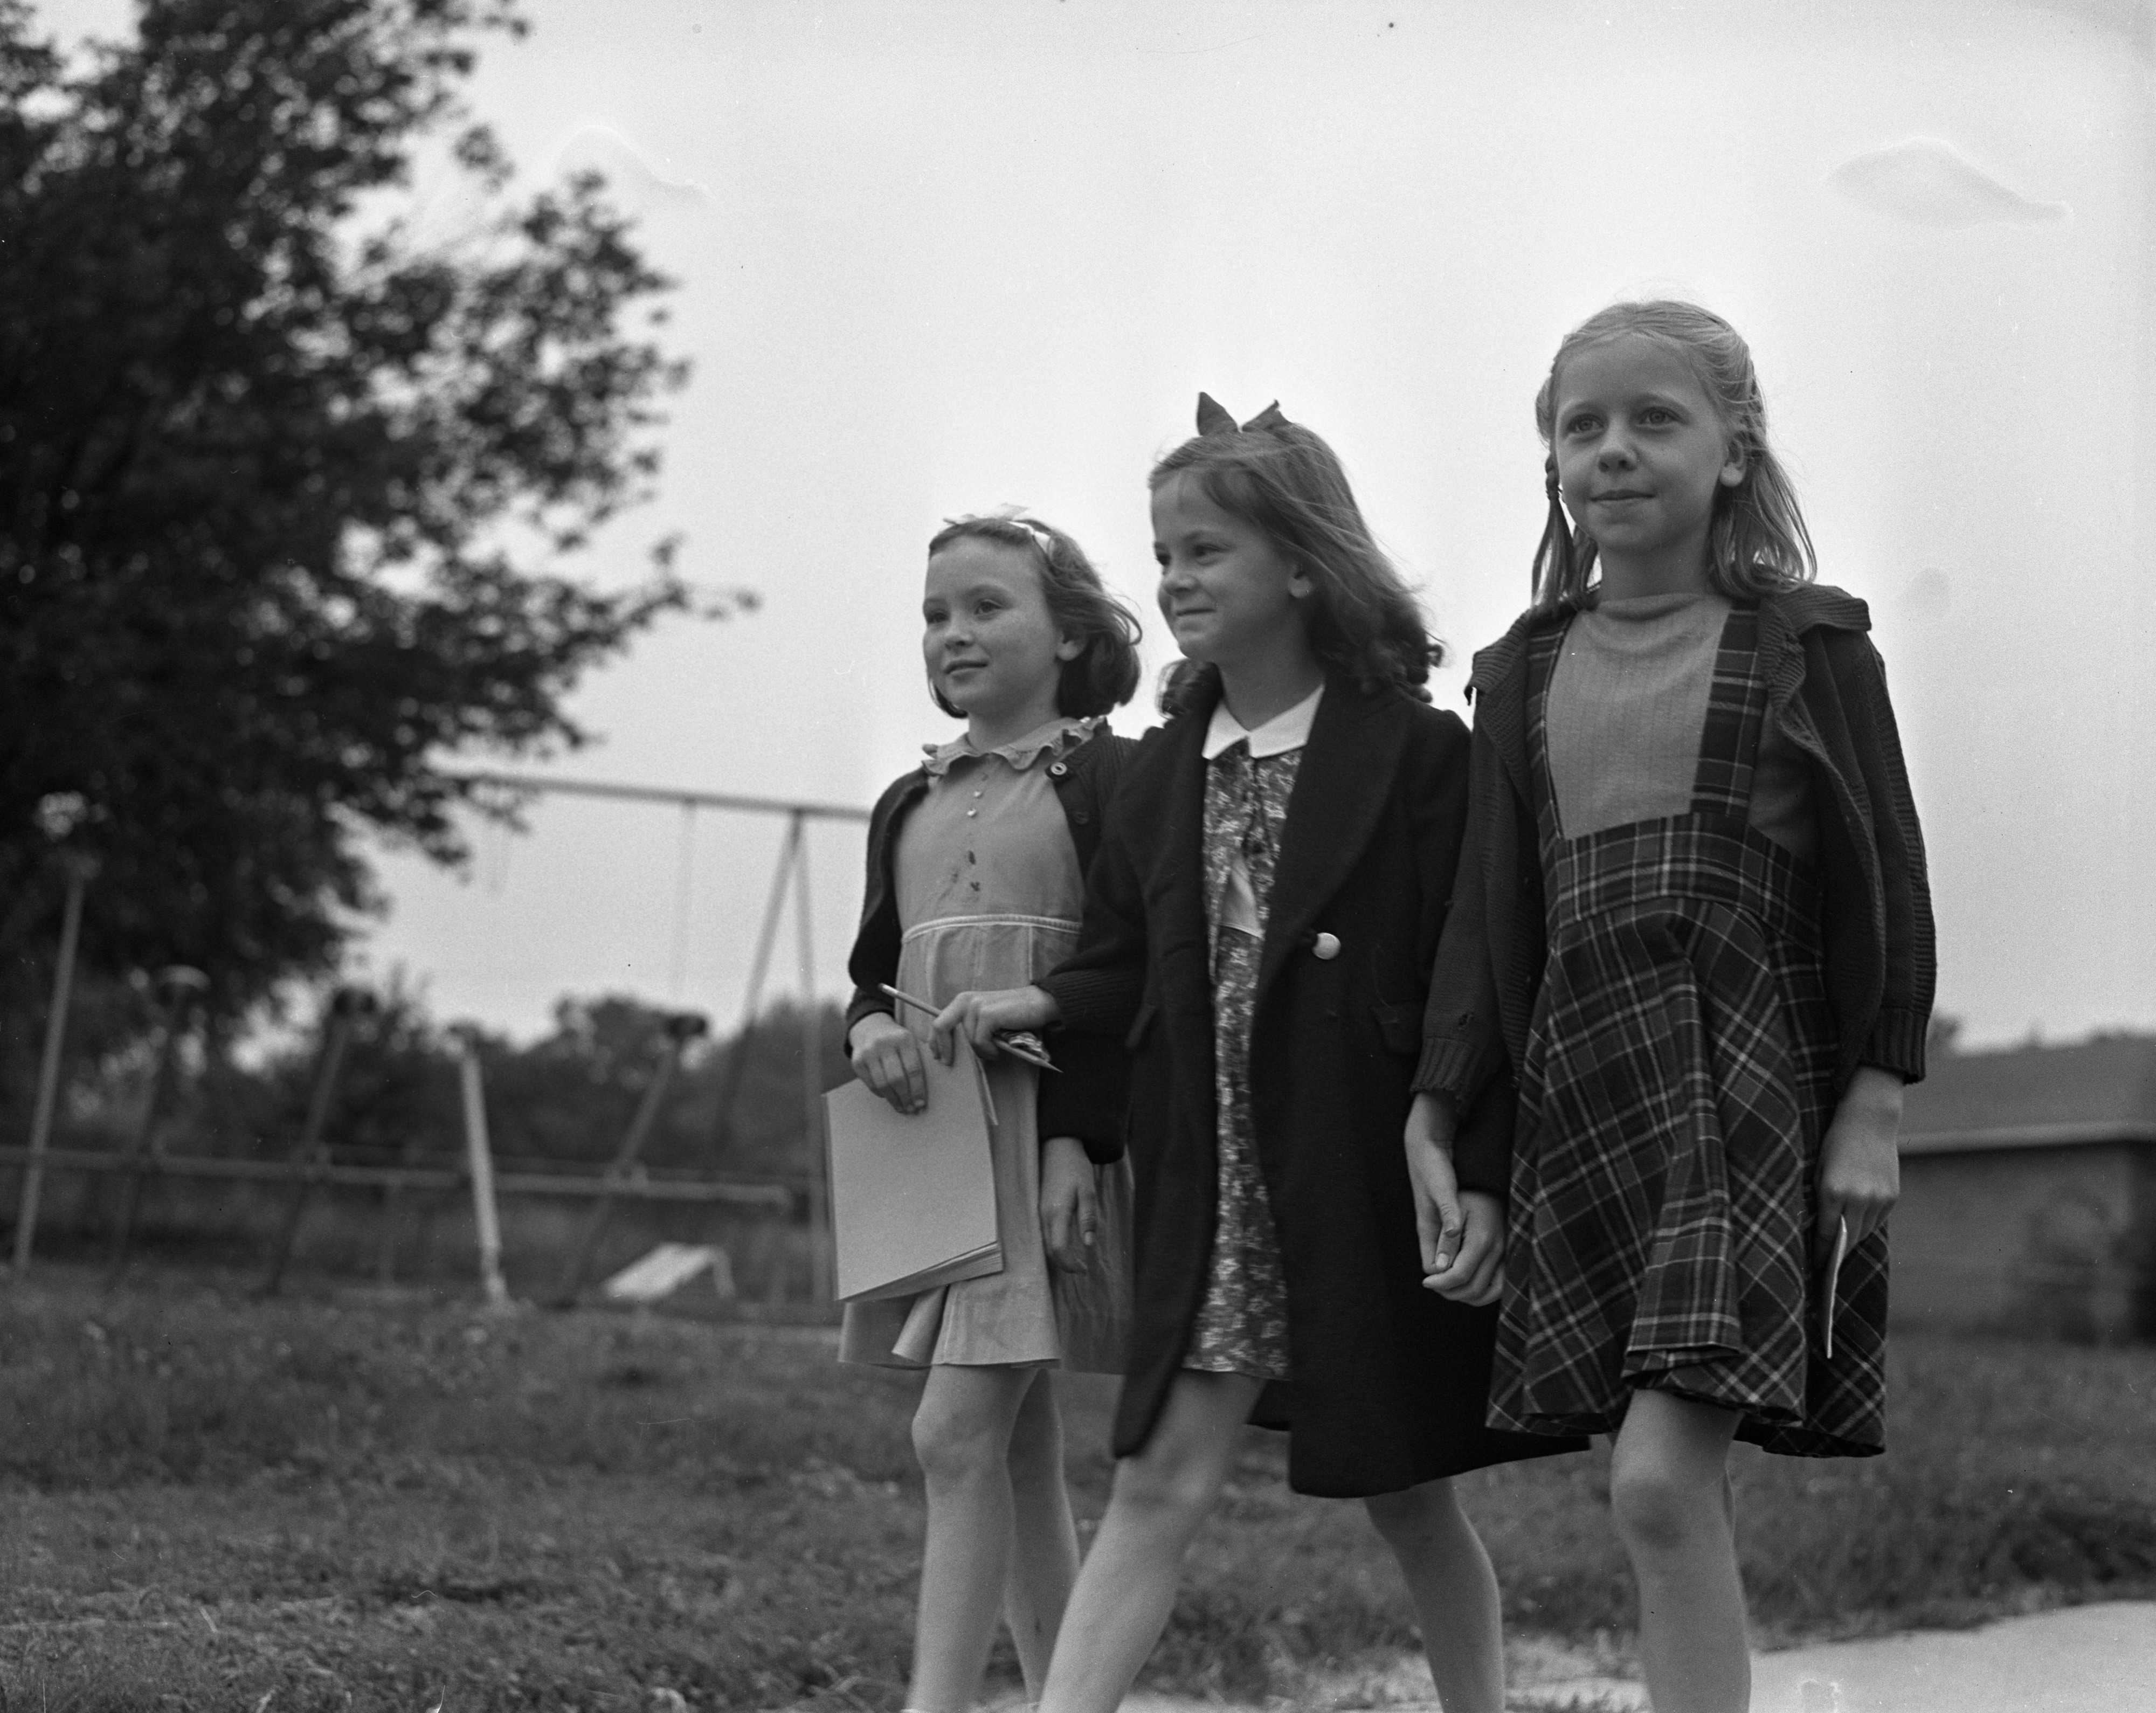 Mack Students Walking On The First Day Of School, September 1940 image